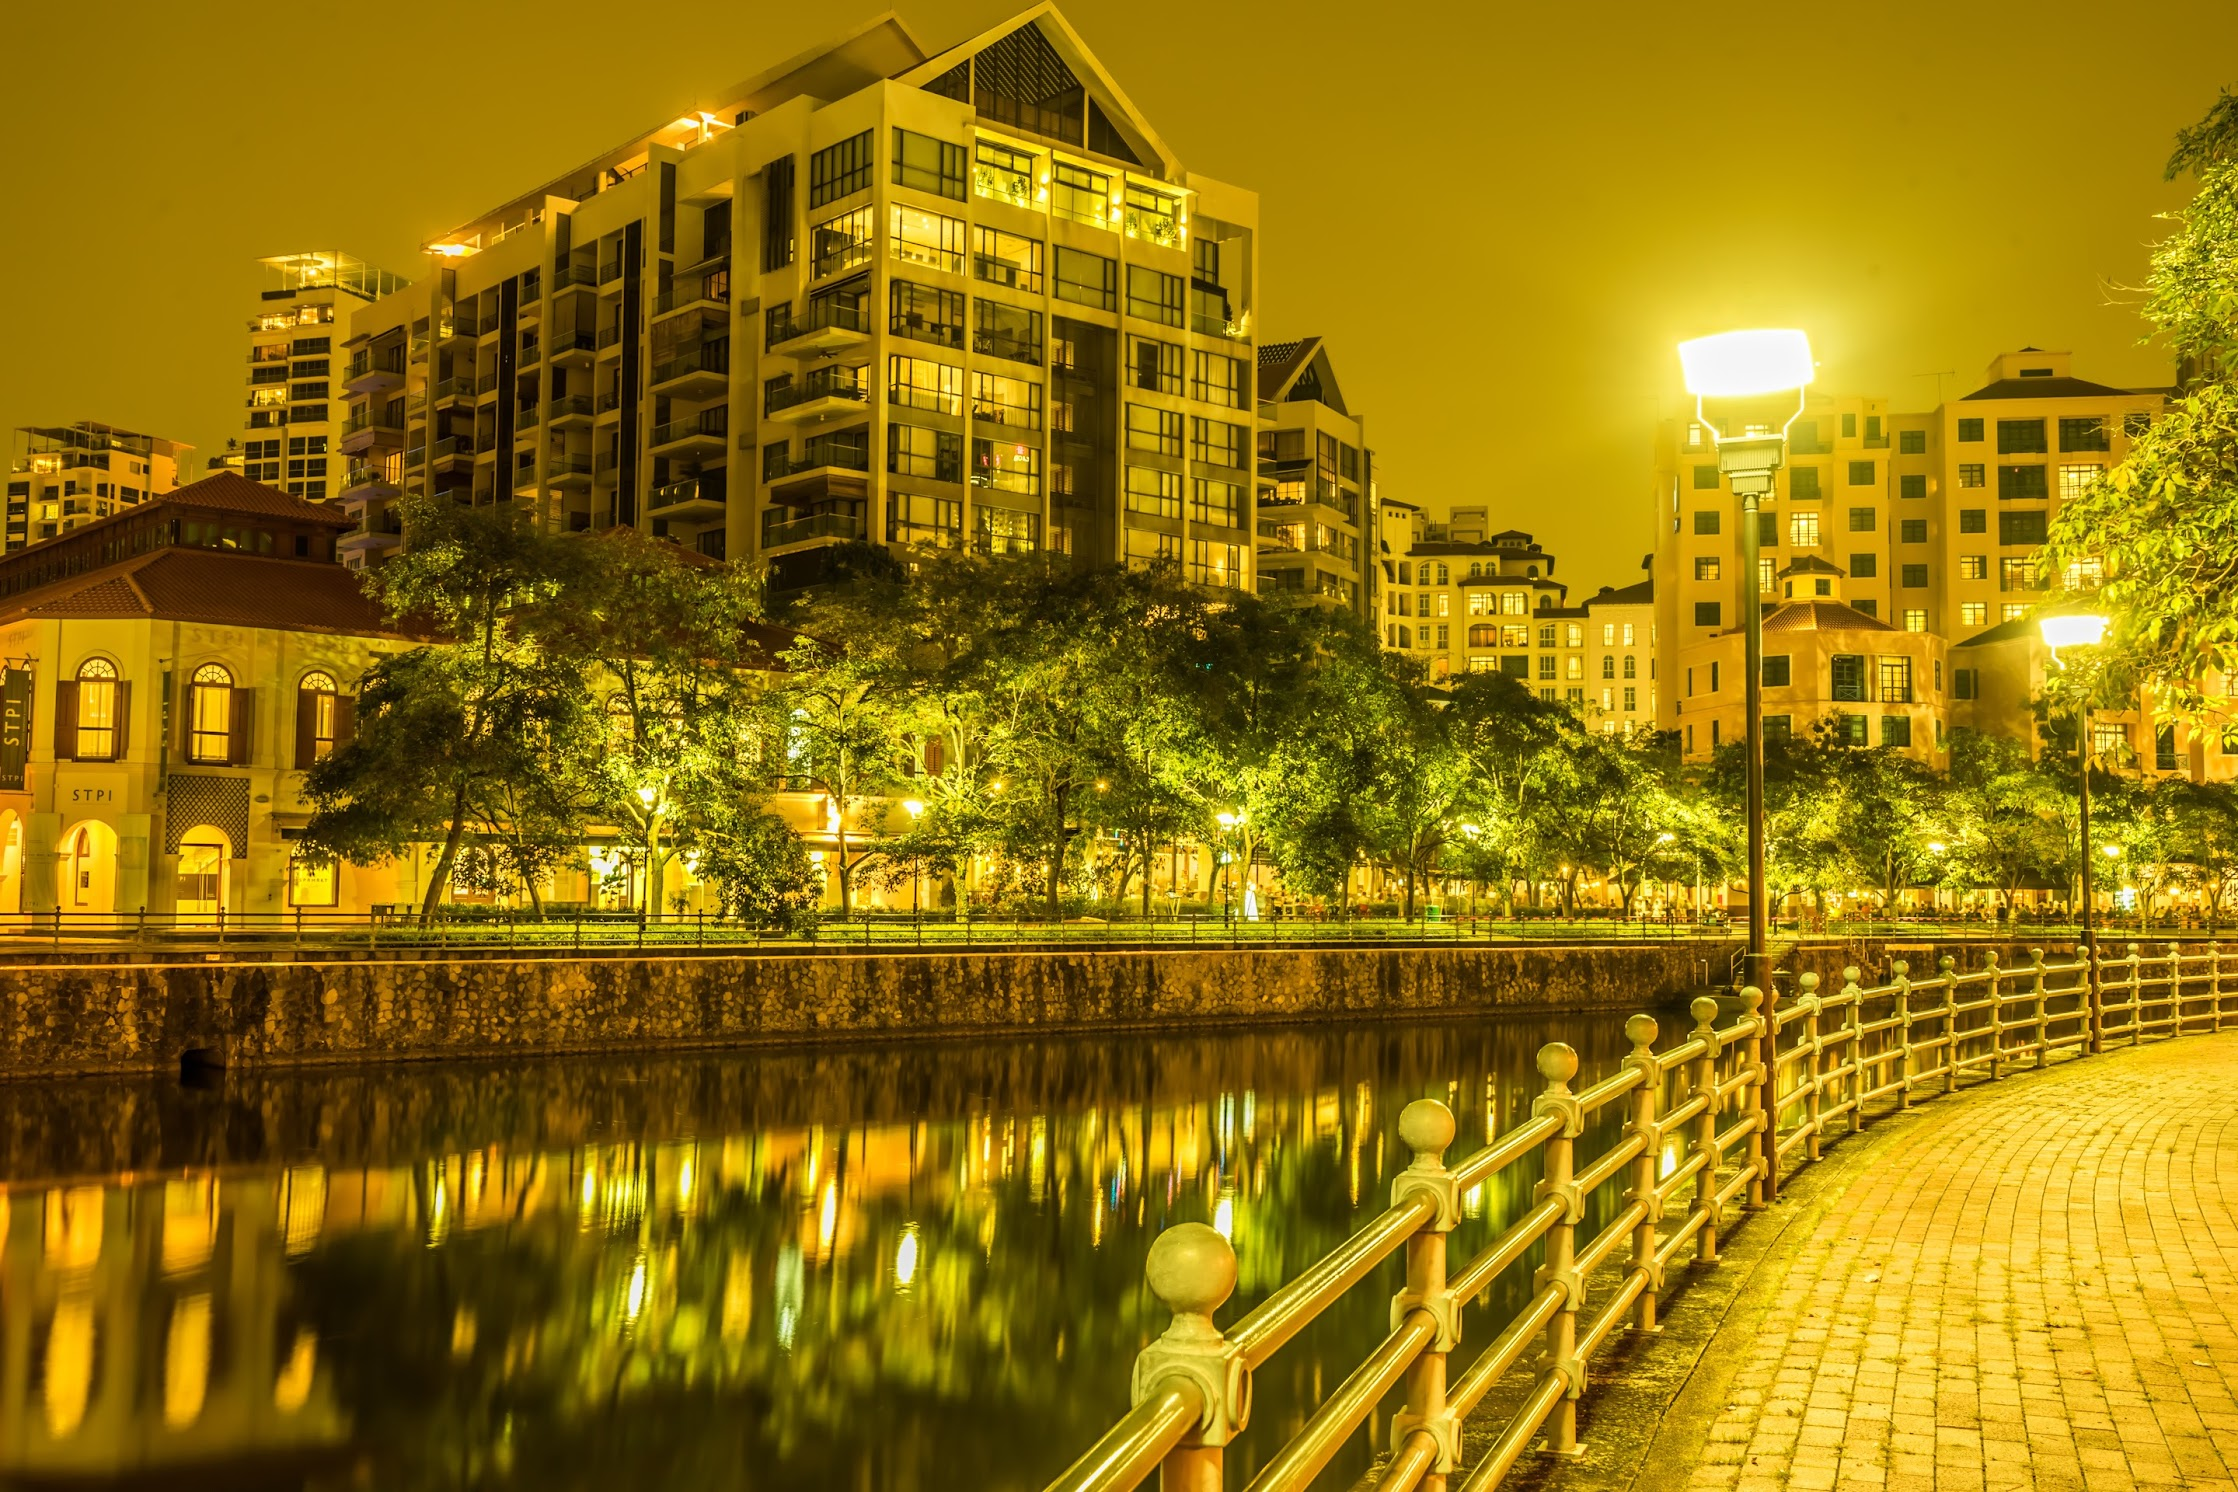 Singapore Robertson Quay night view2